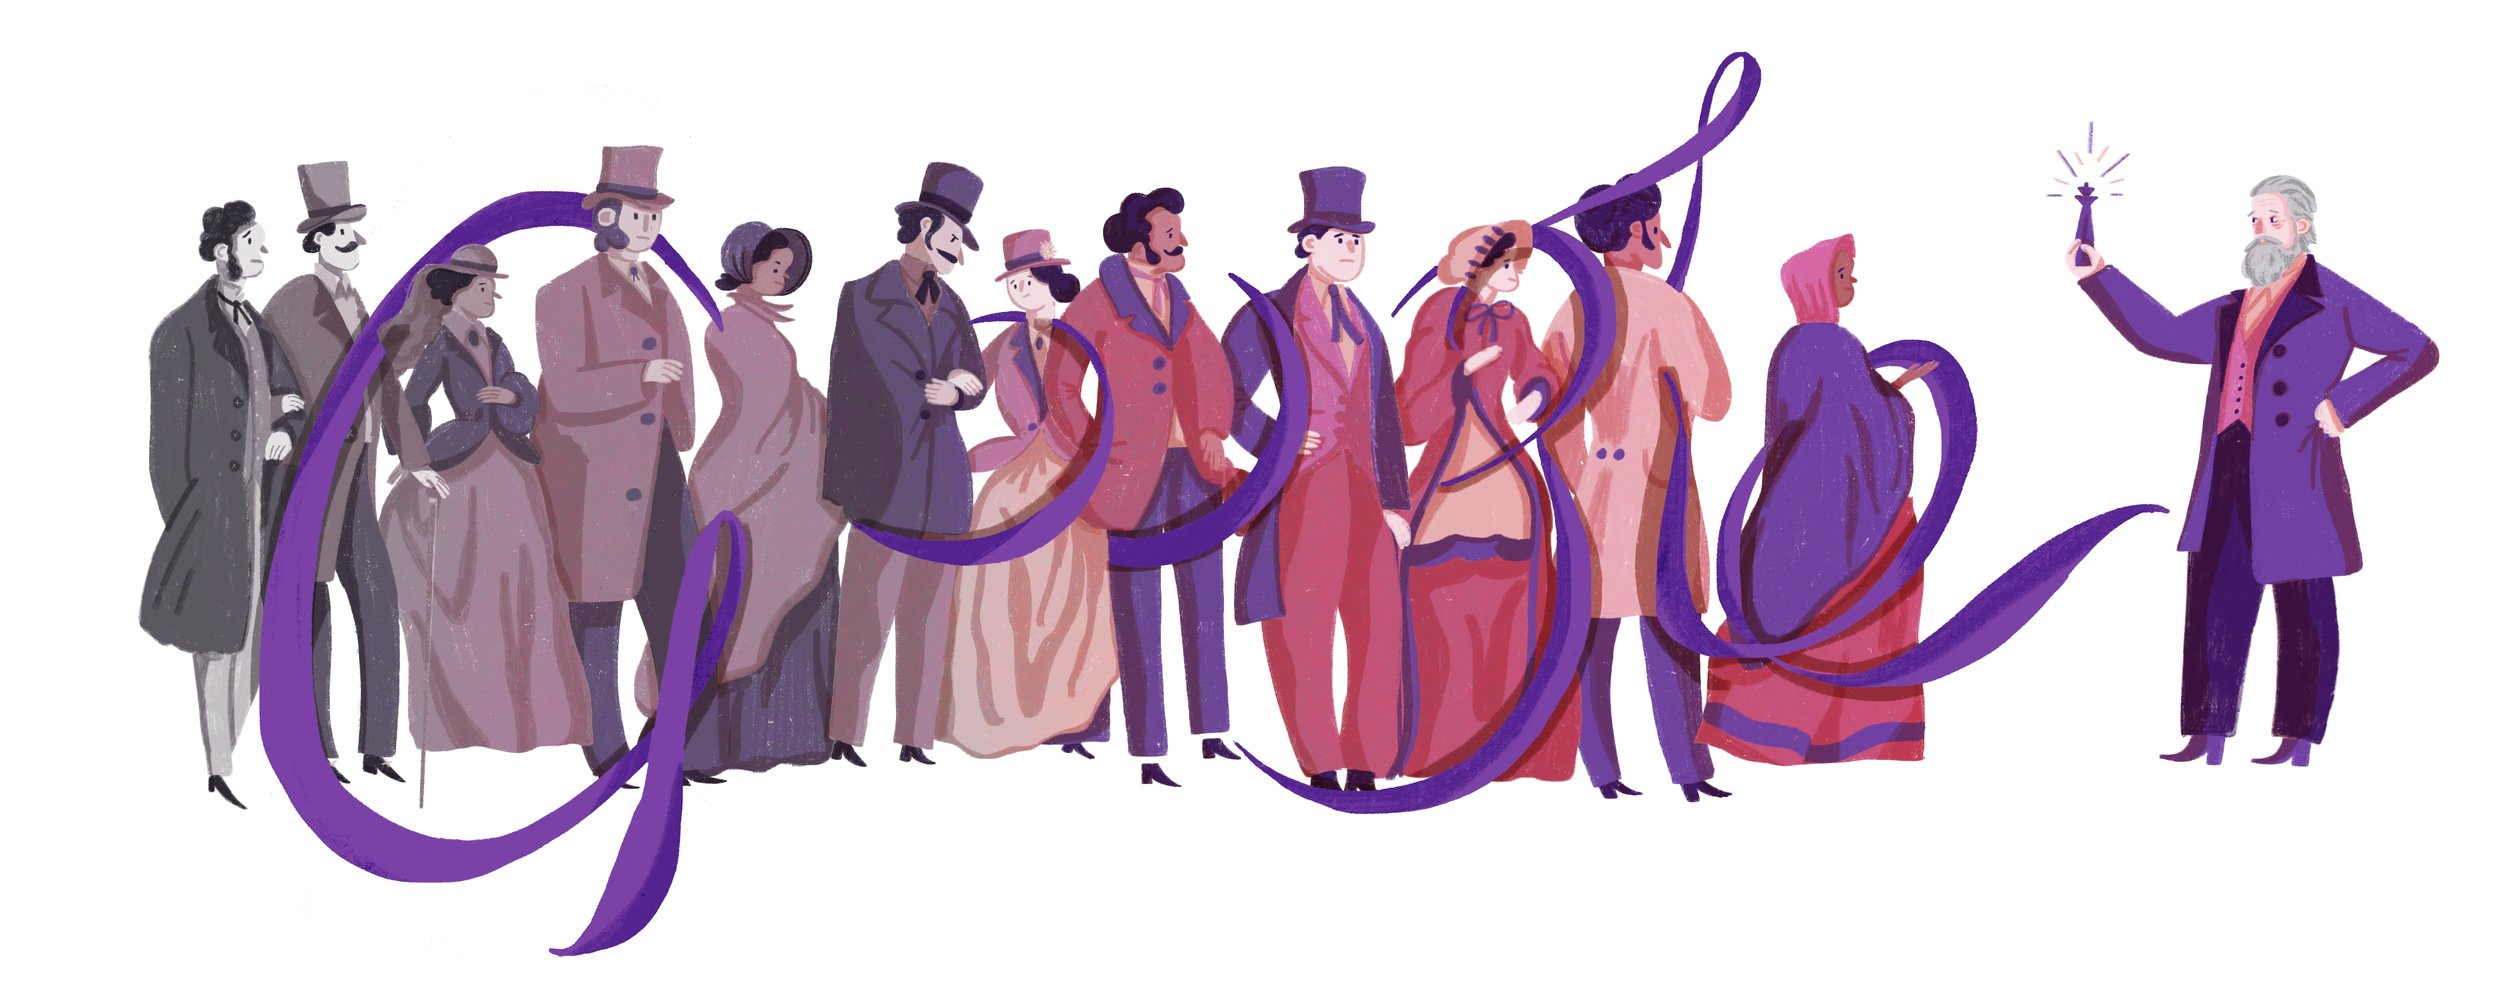 March 12th 2018, Google Doodle celebrationg the 180th birthday of Sir William Henry Perkin